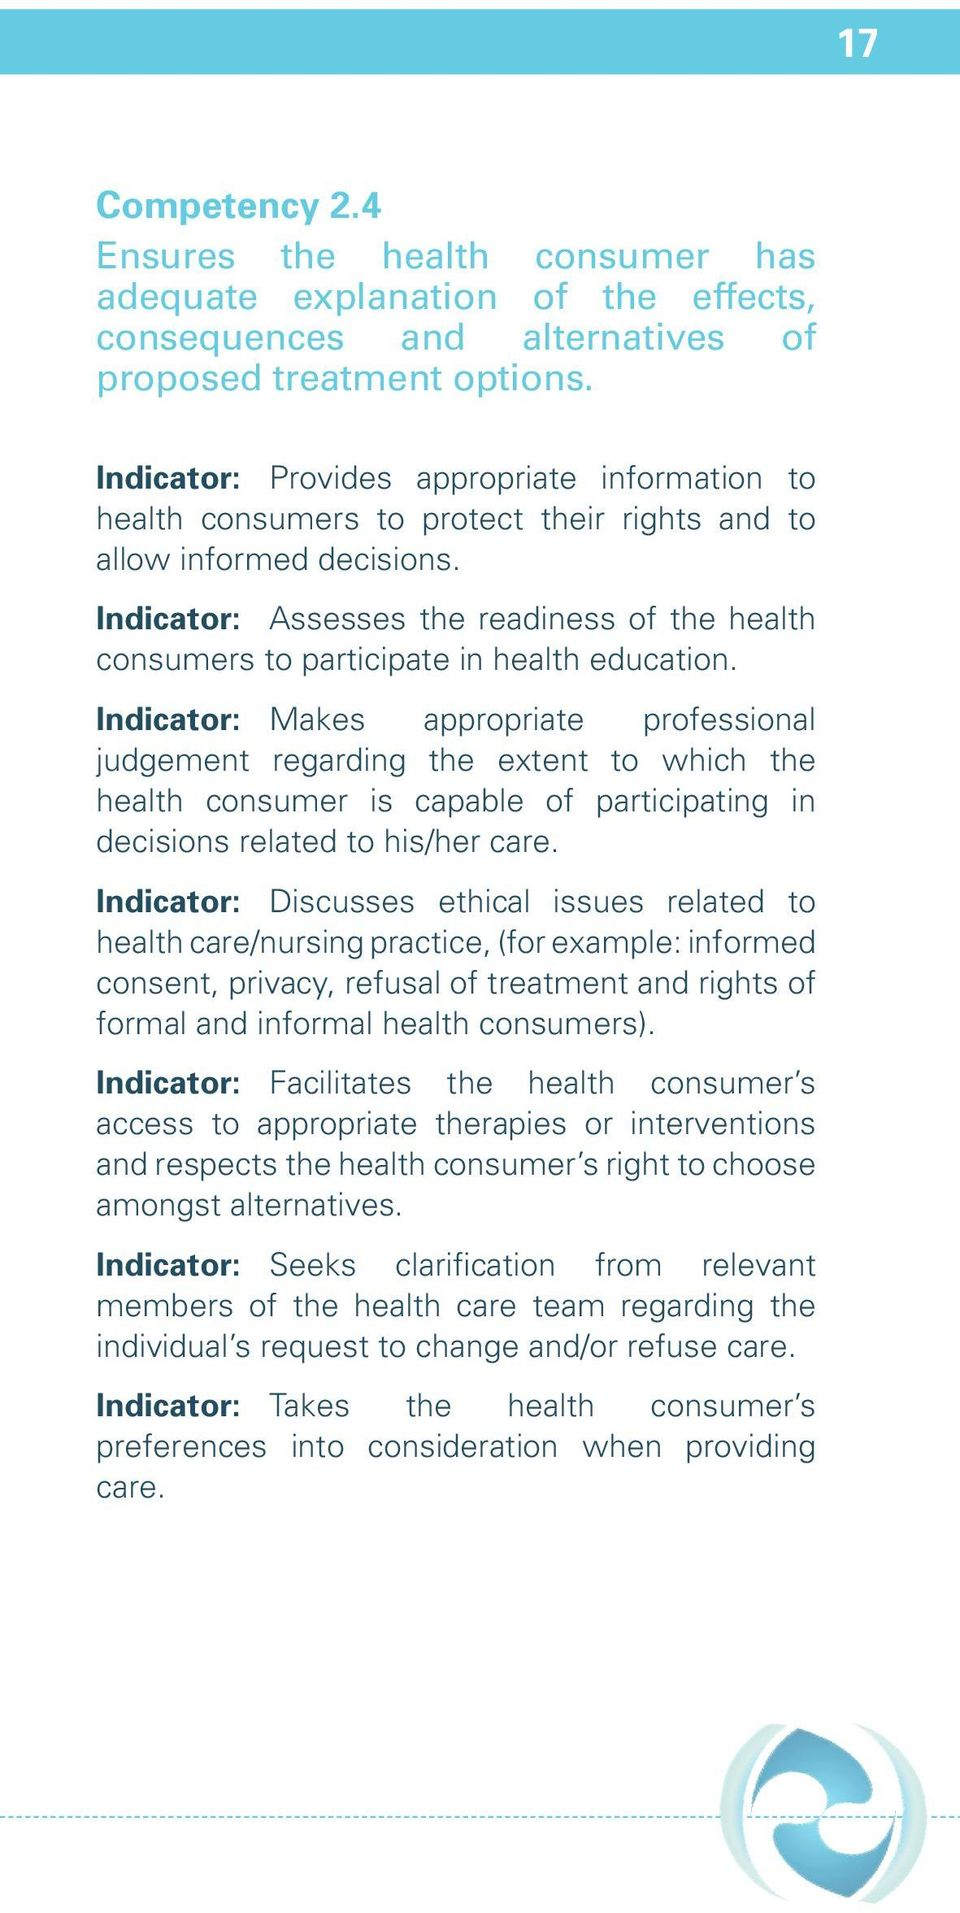 Indicator: Assesses the readiness of the health consumers to participate in health education.